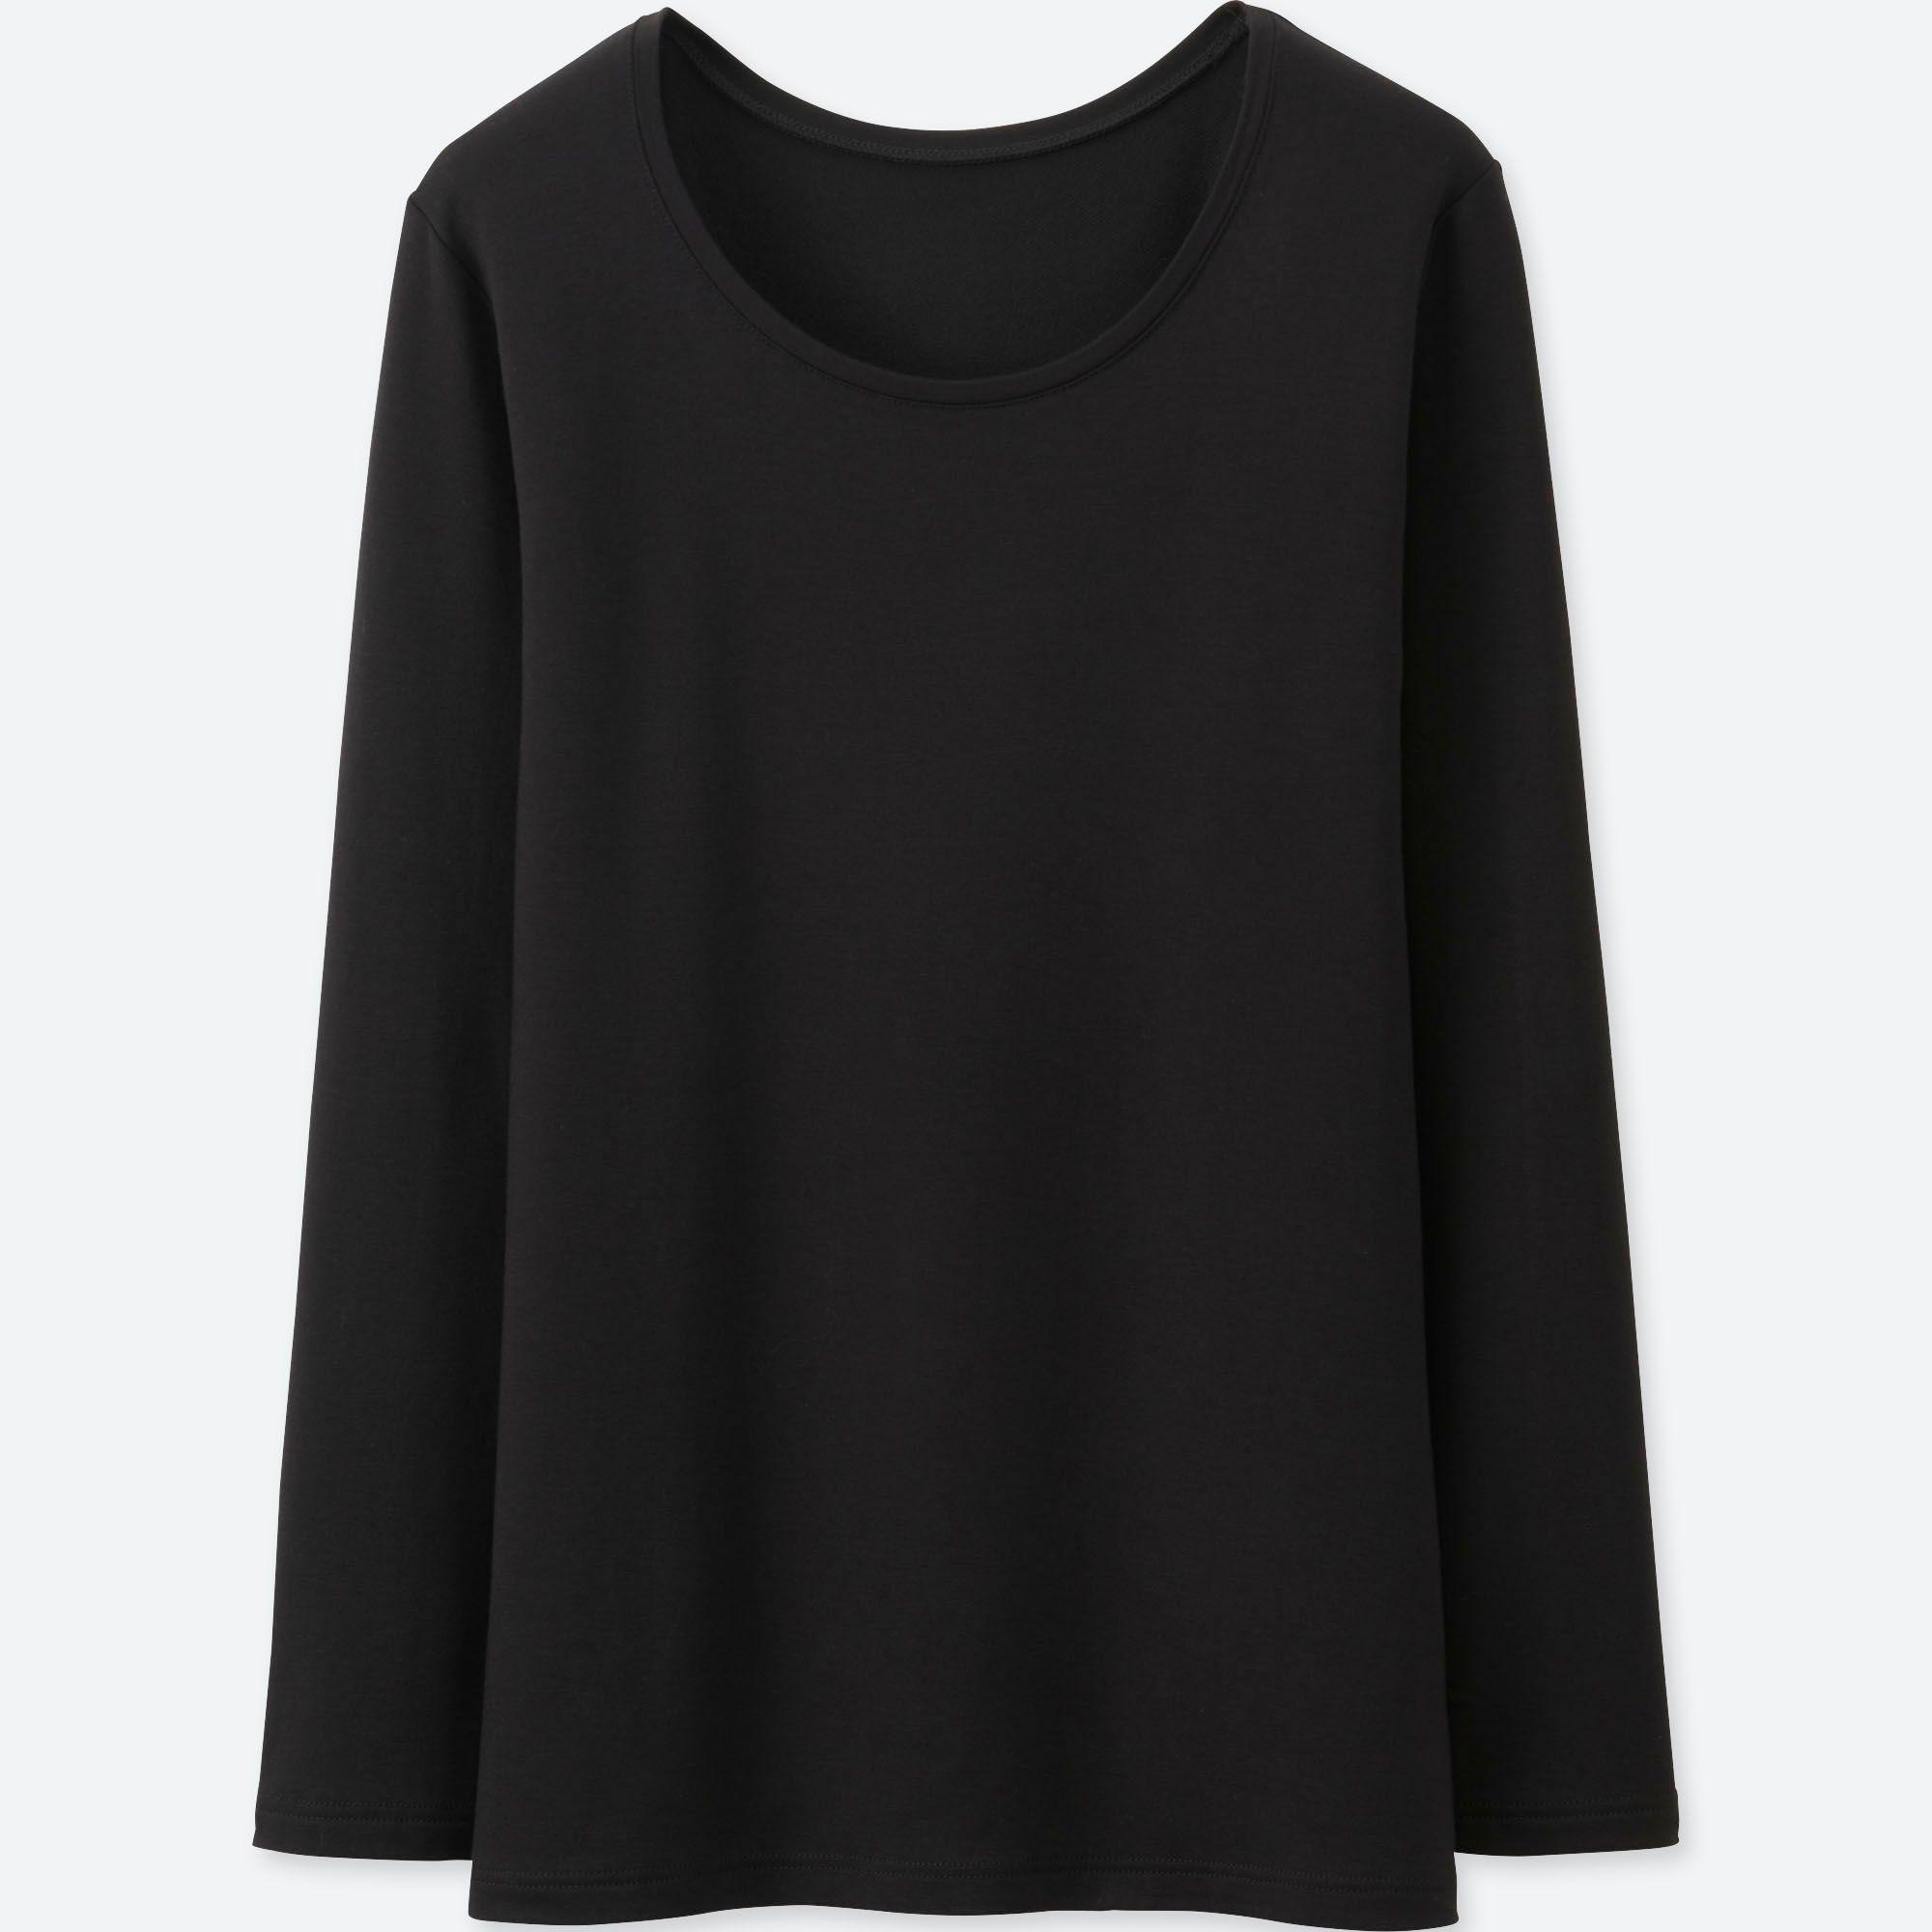 6621d878c65d Uniqlo Heattech Extra Warm Crew Neck Long Sleeved T-shirt in Black ...